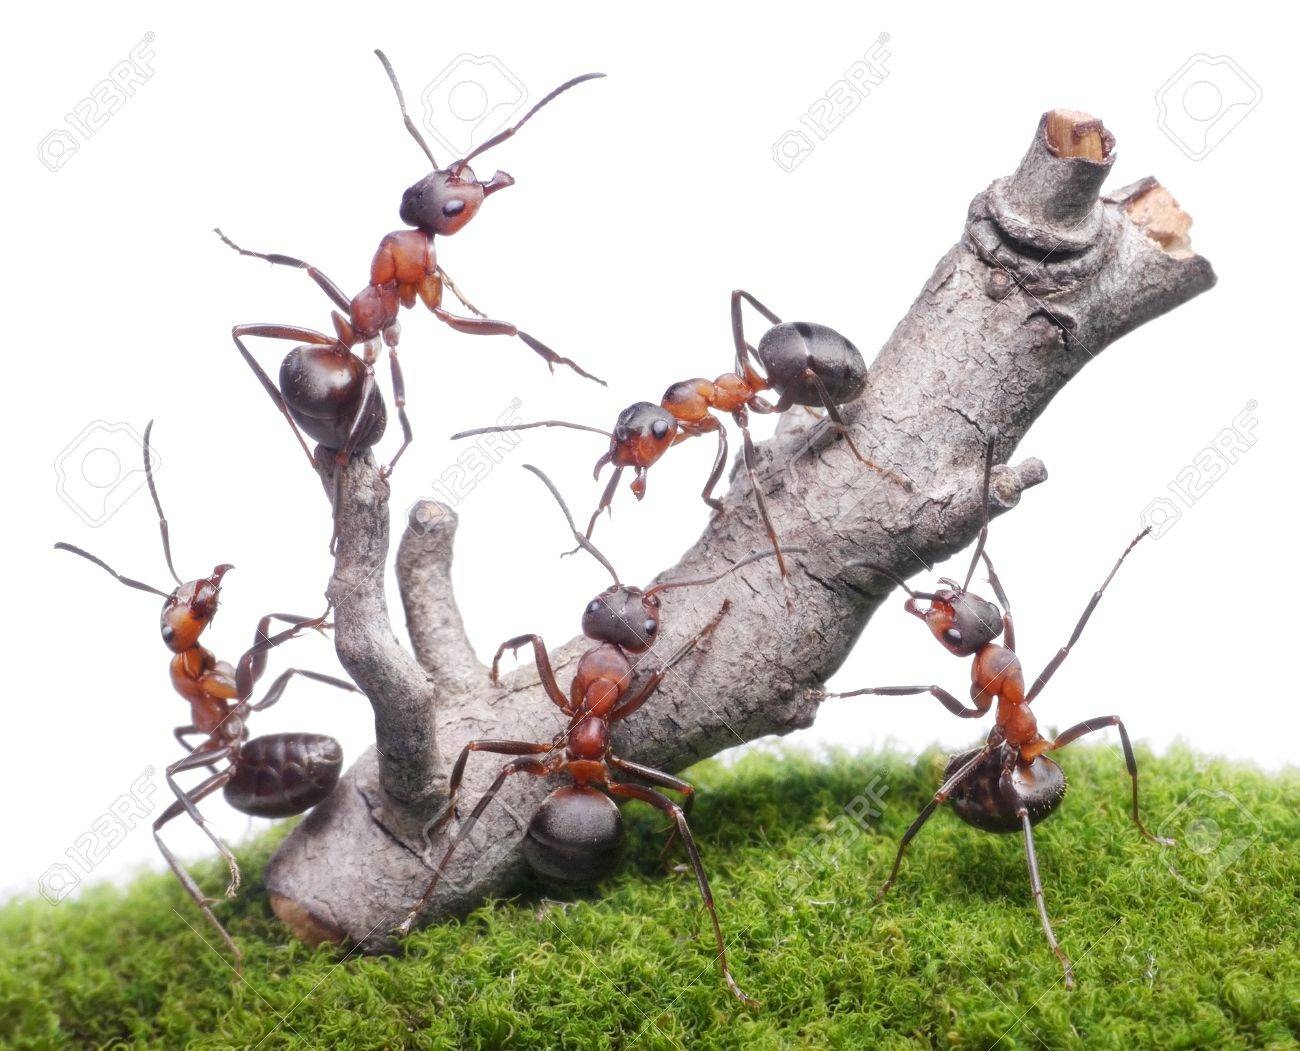 ants bring down weathered tree, teamwork isolated on white background Stock Photo - 19971191